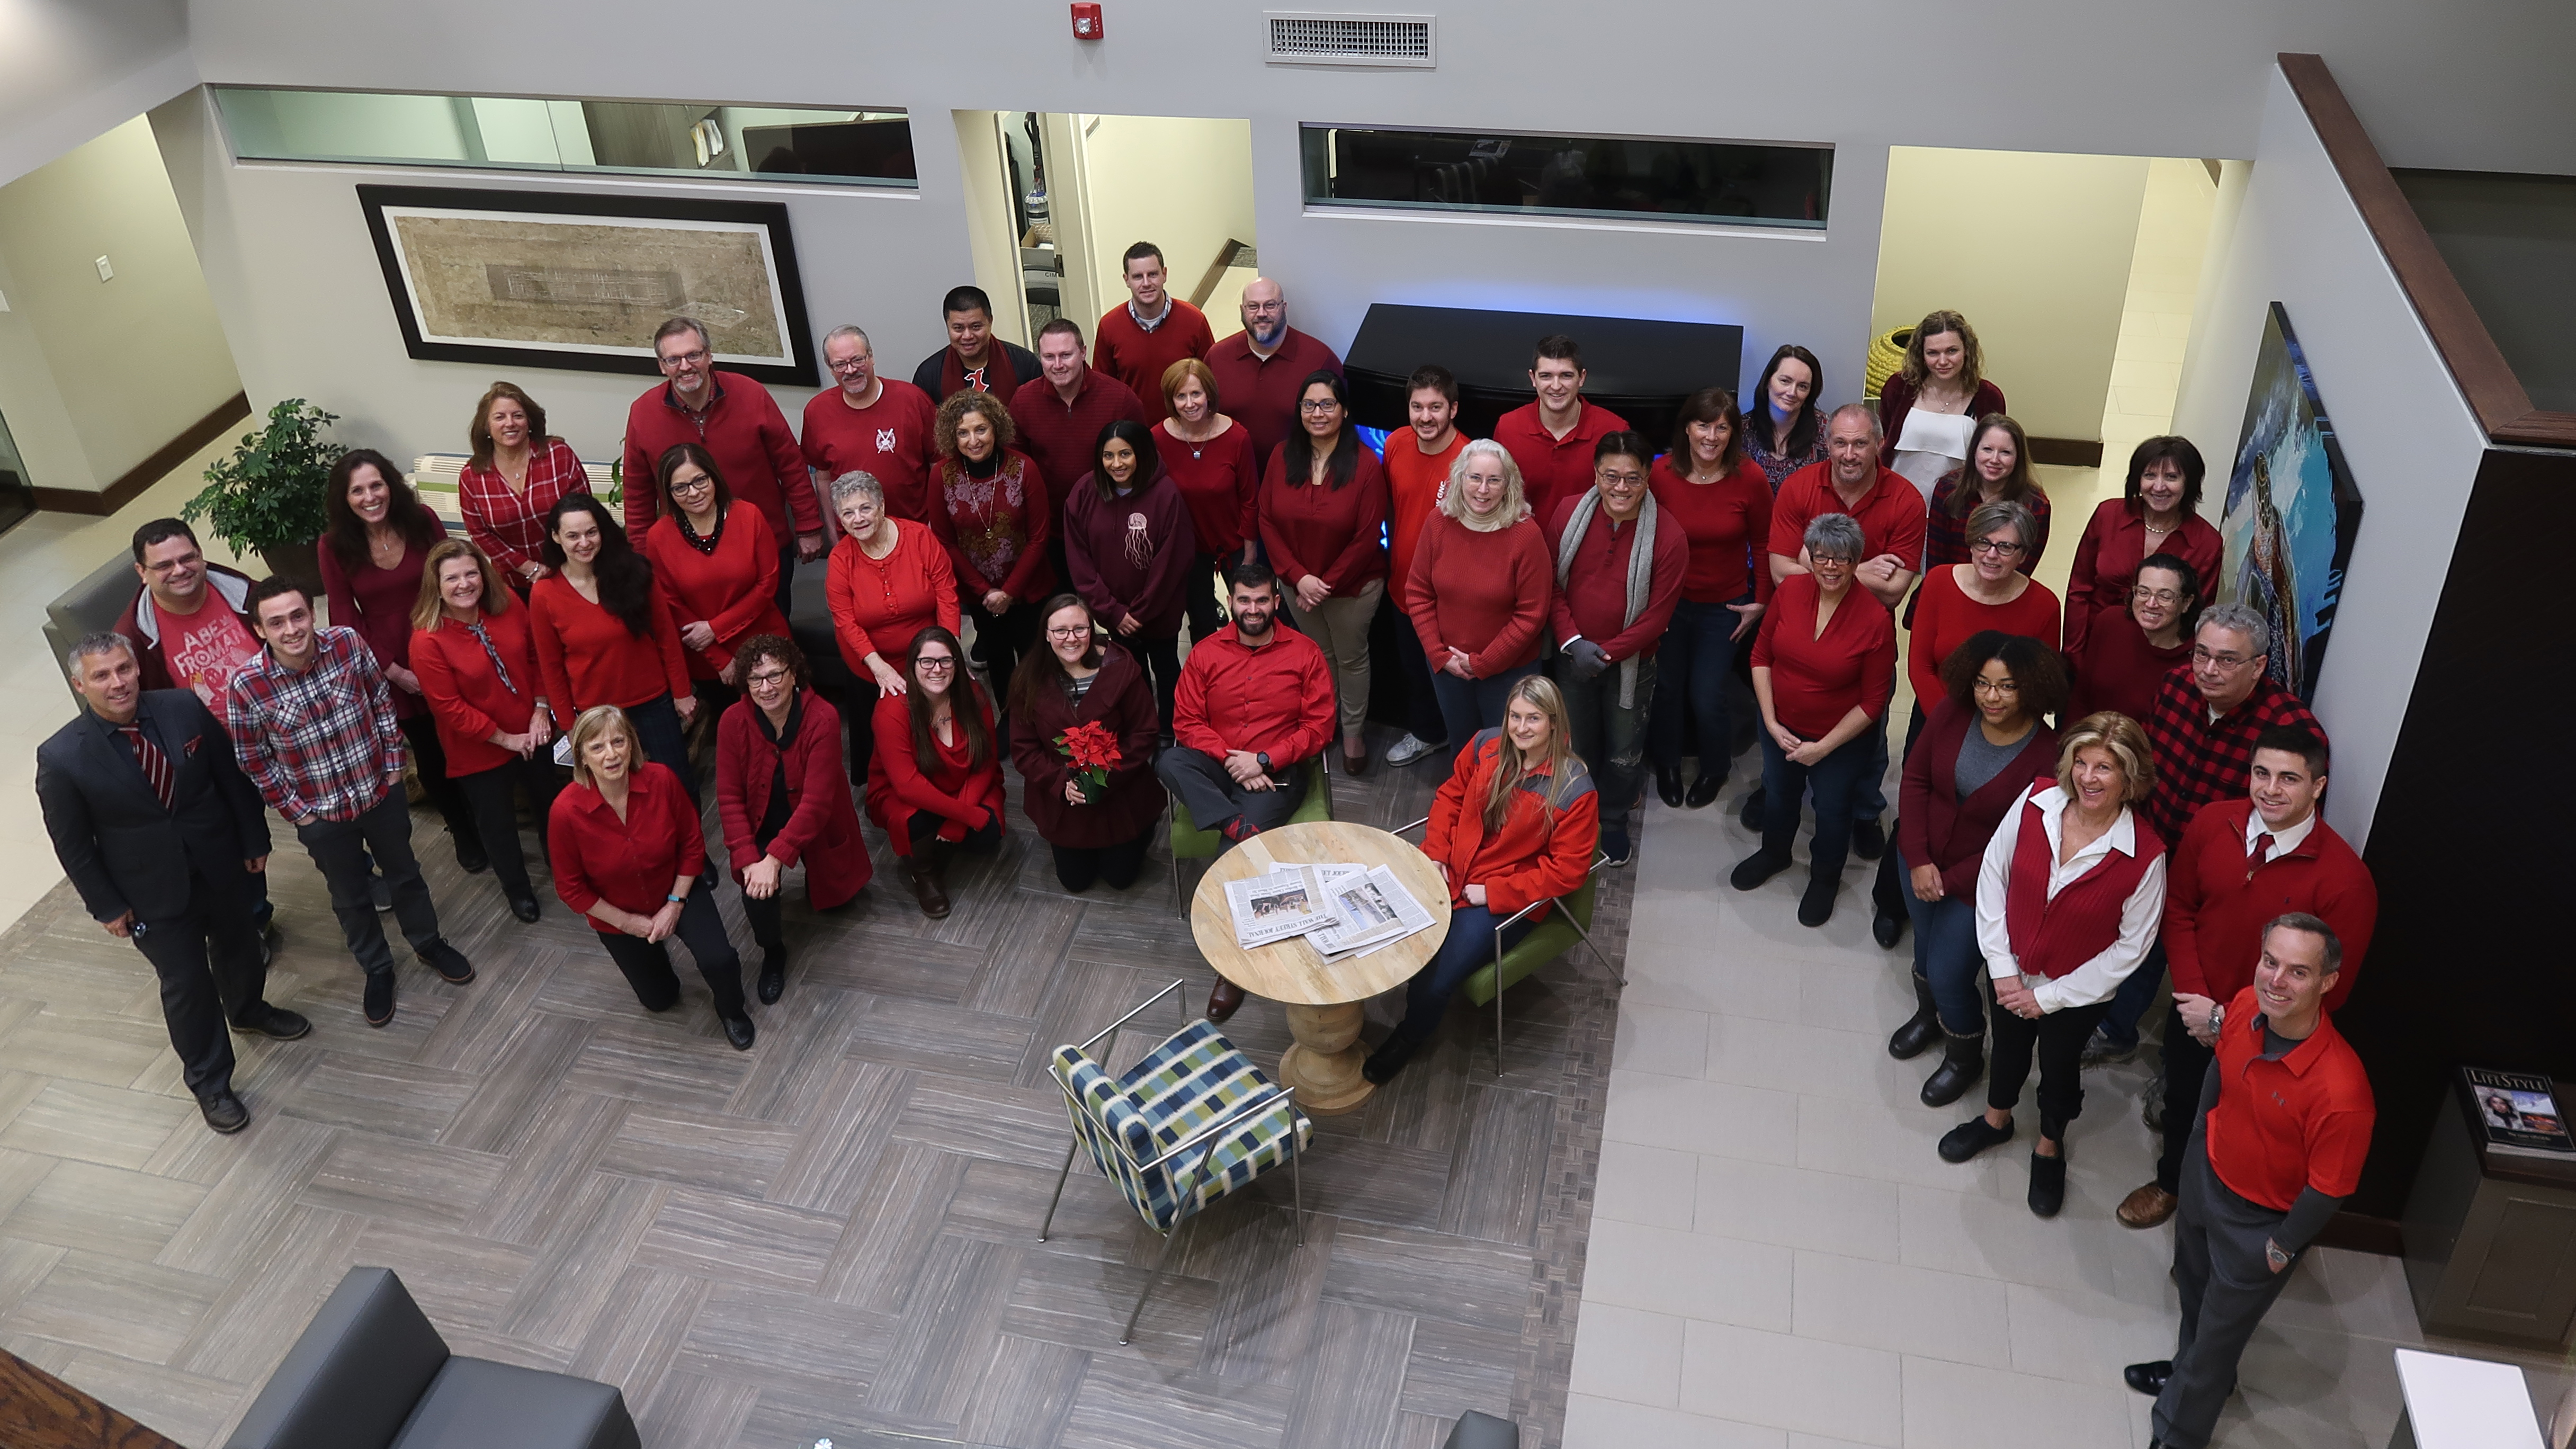 Capaldi Reynolds & Pelosi Partners and Employees Go Red for Women